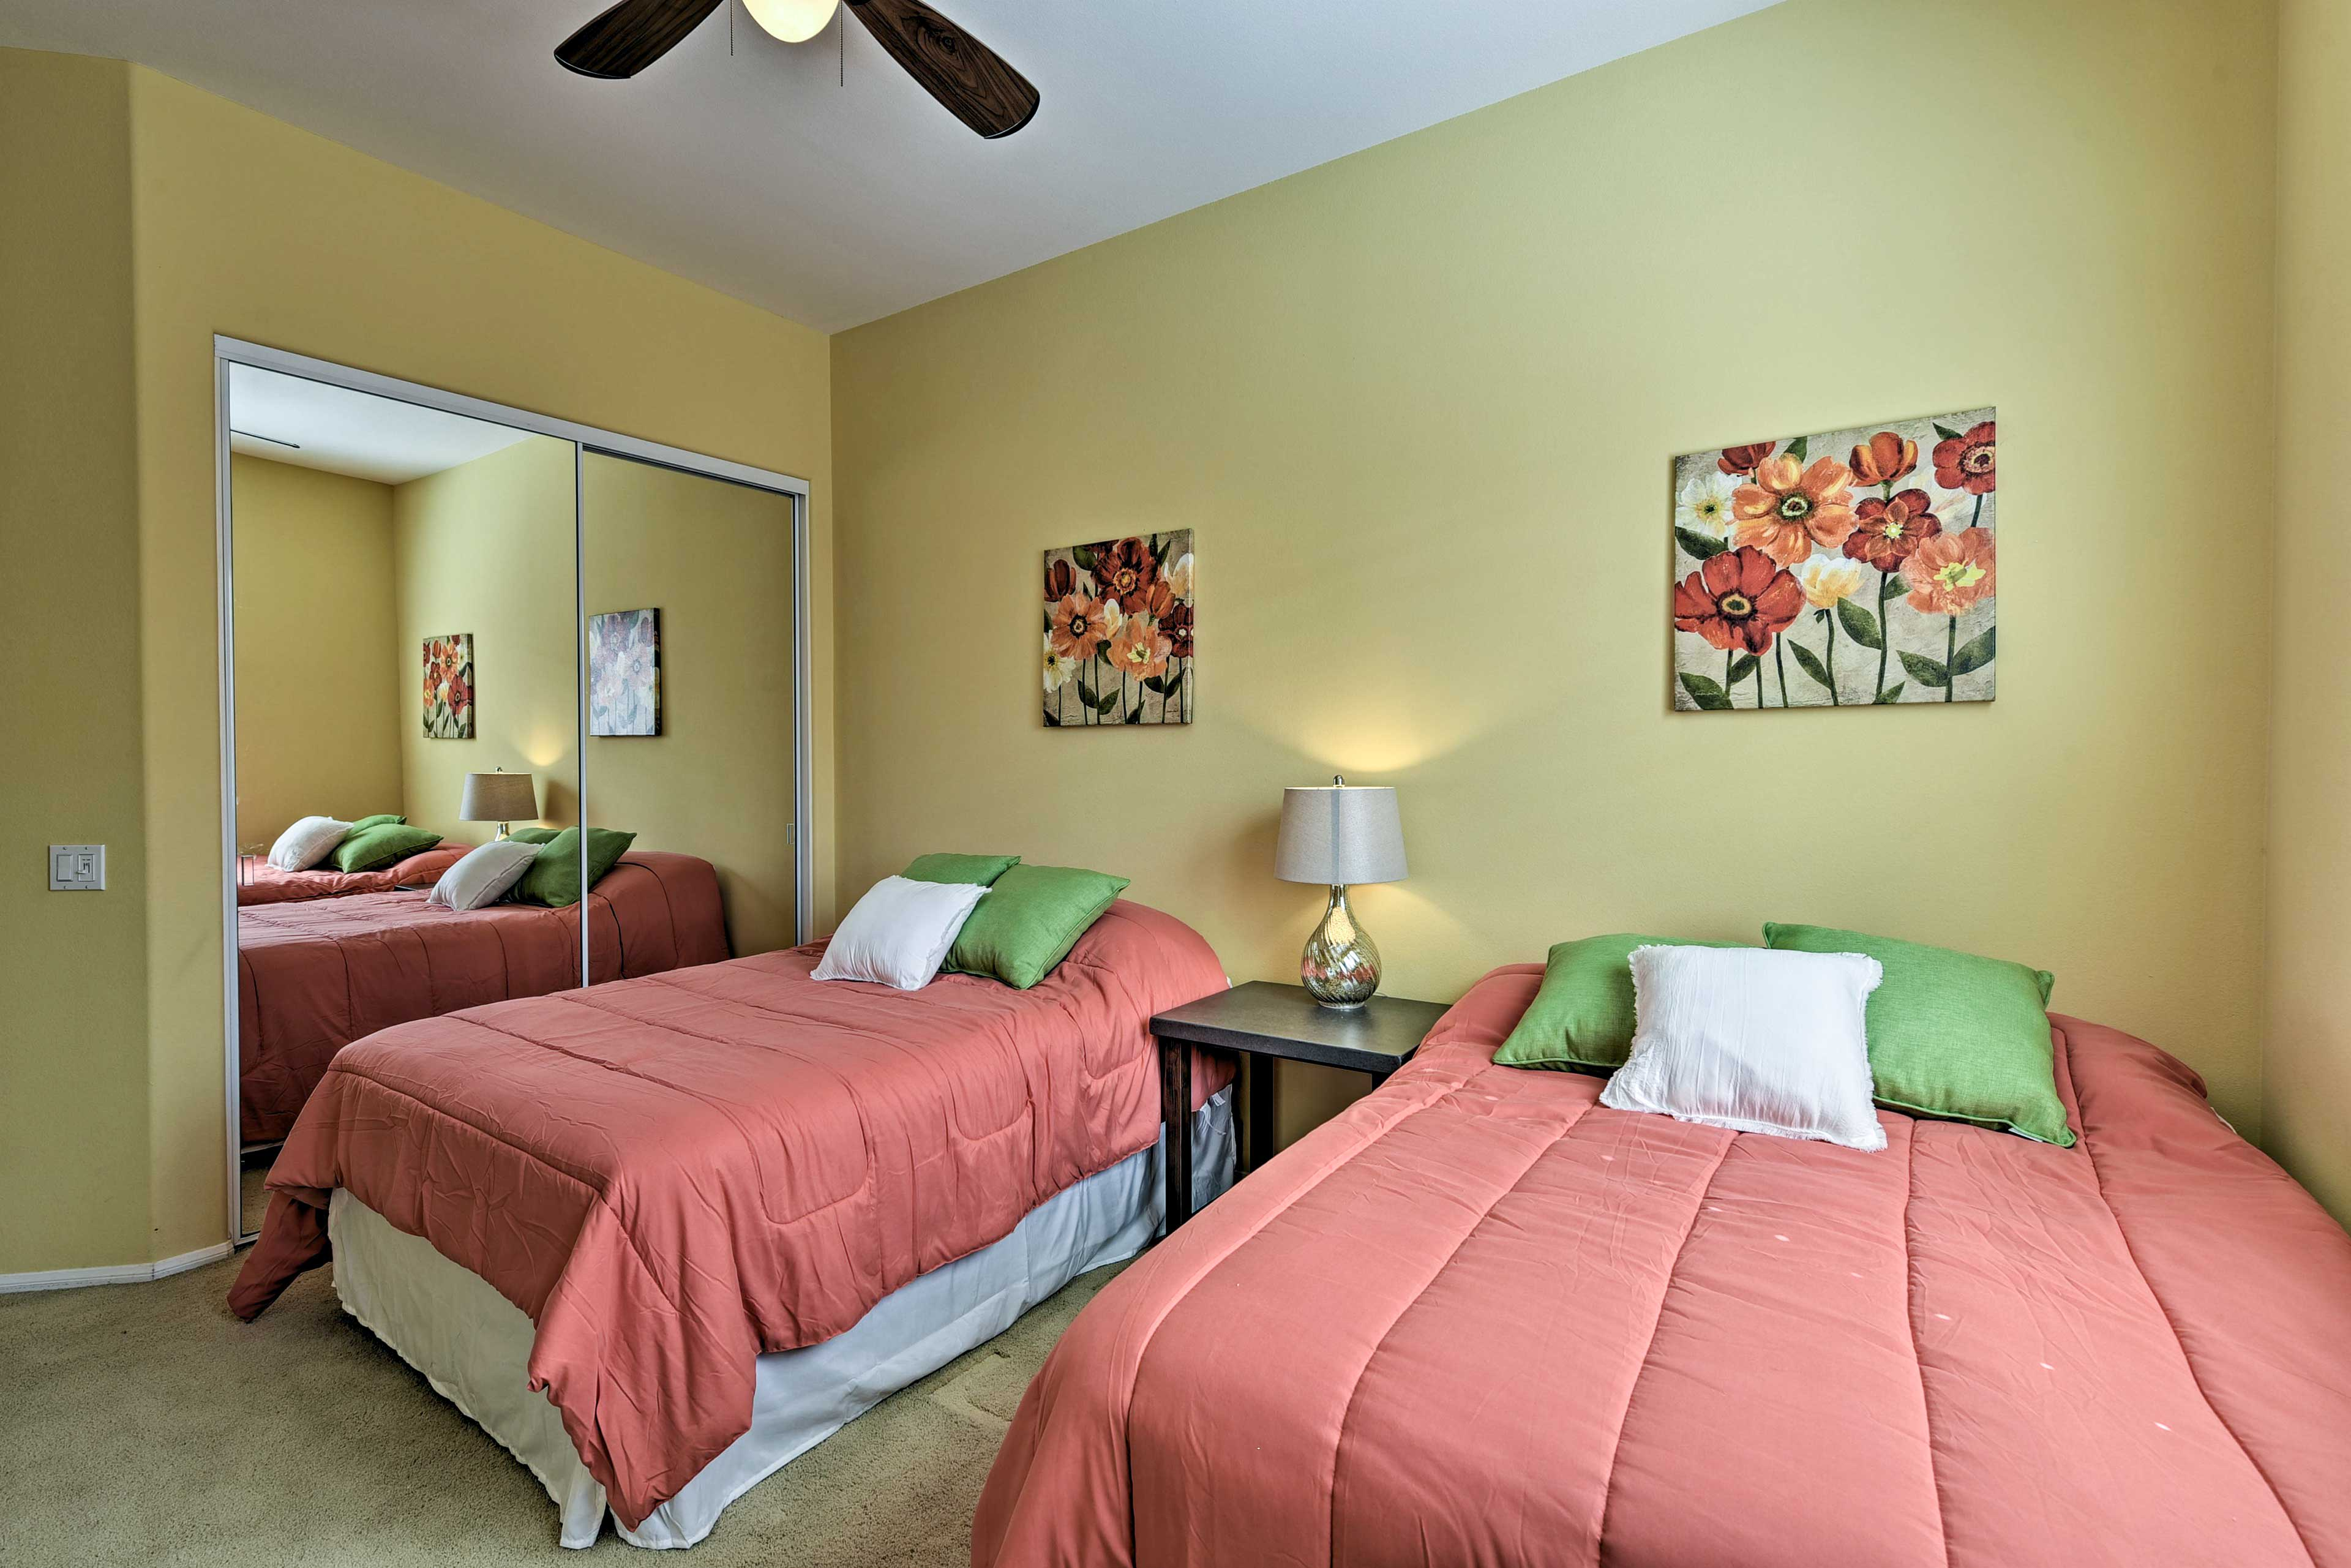 This room is perfect for friends or siblings sharing a room on vacation.